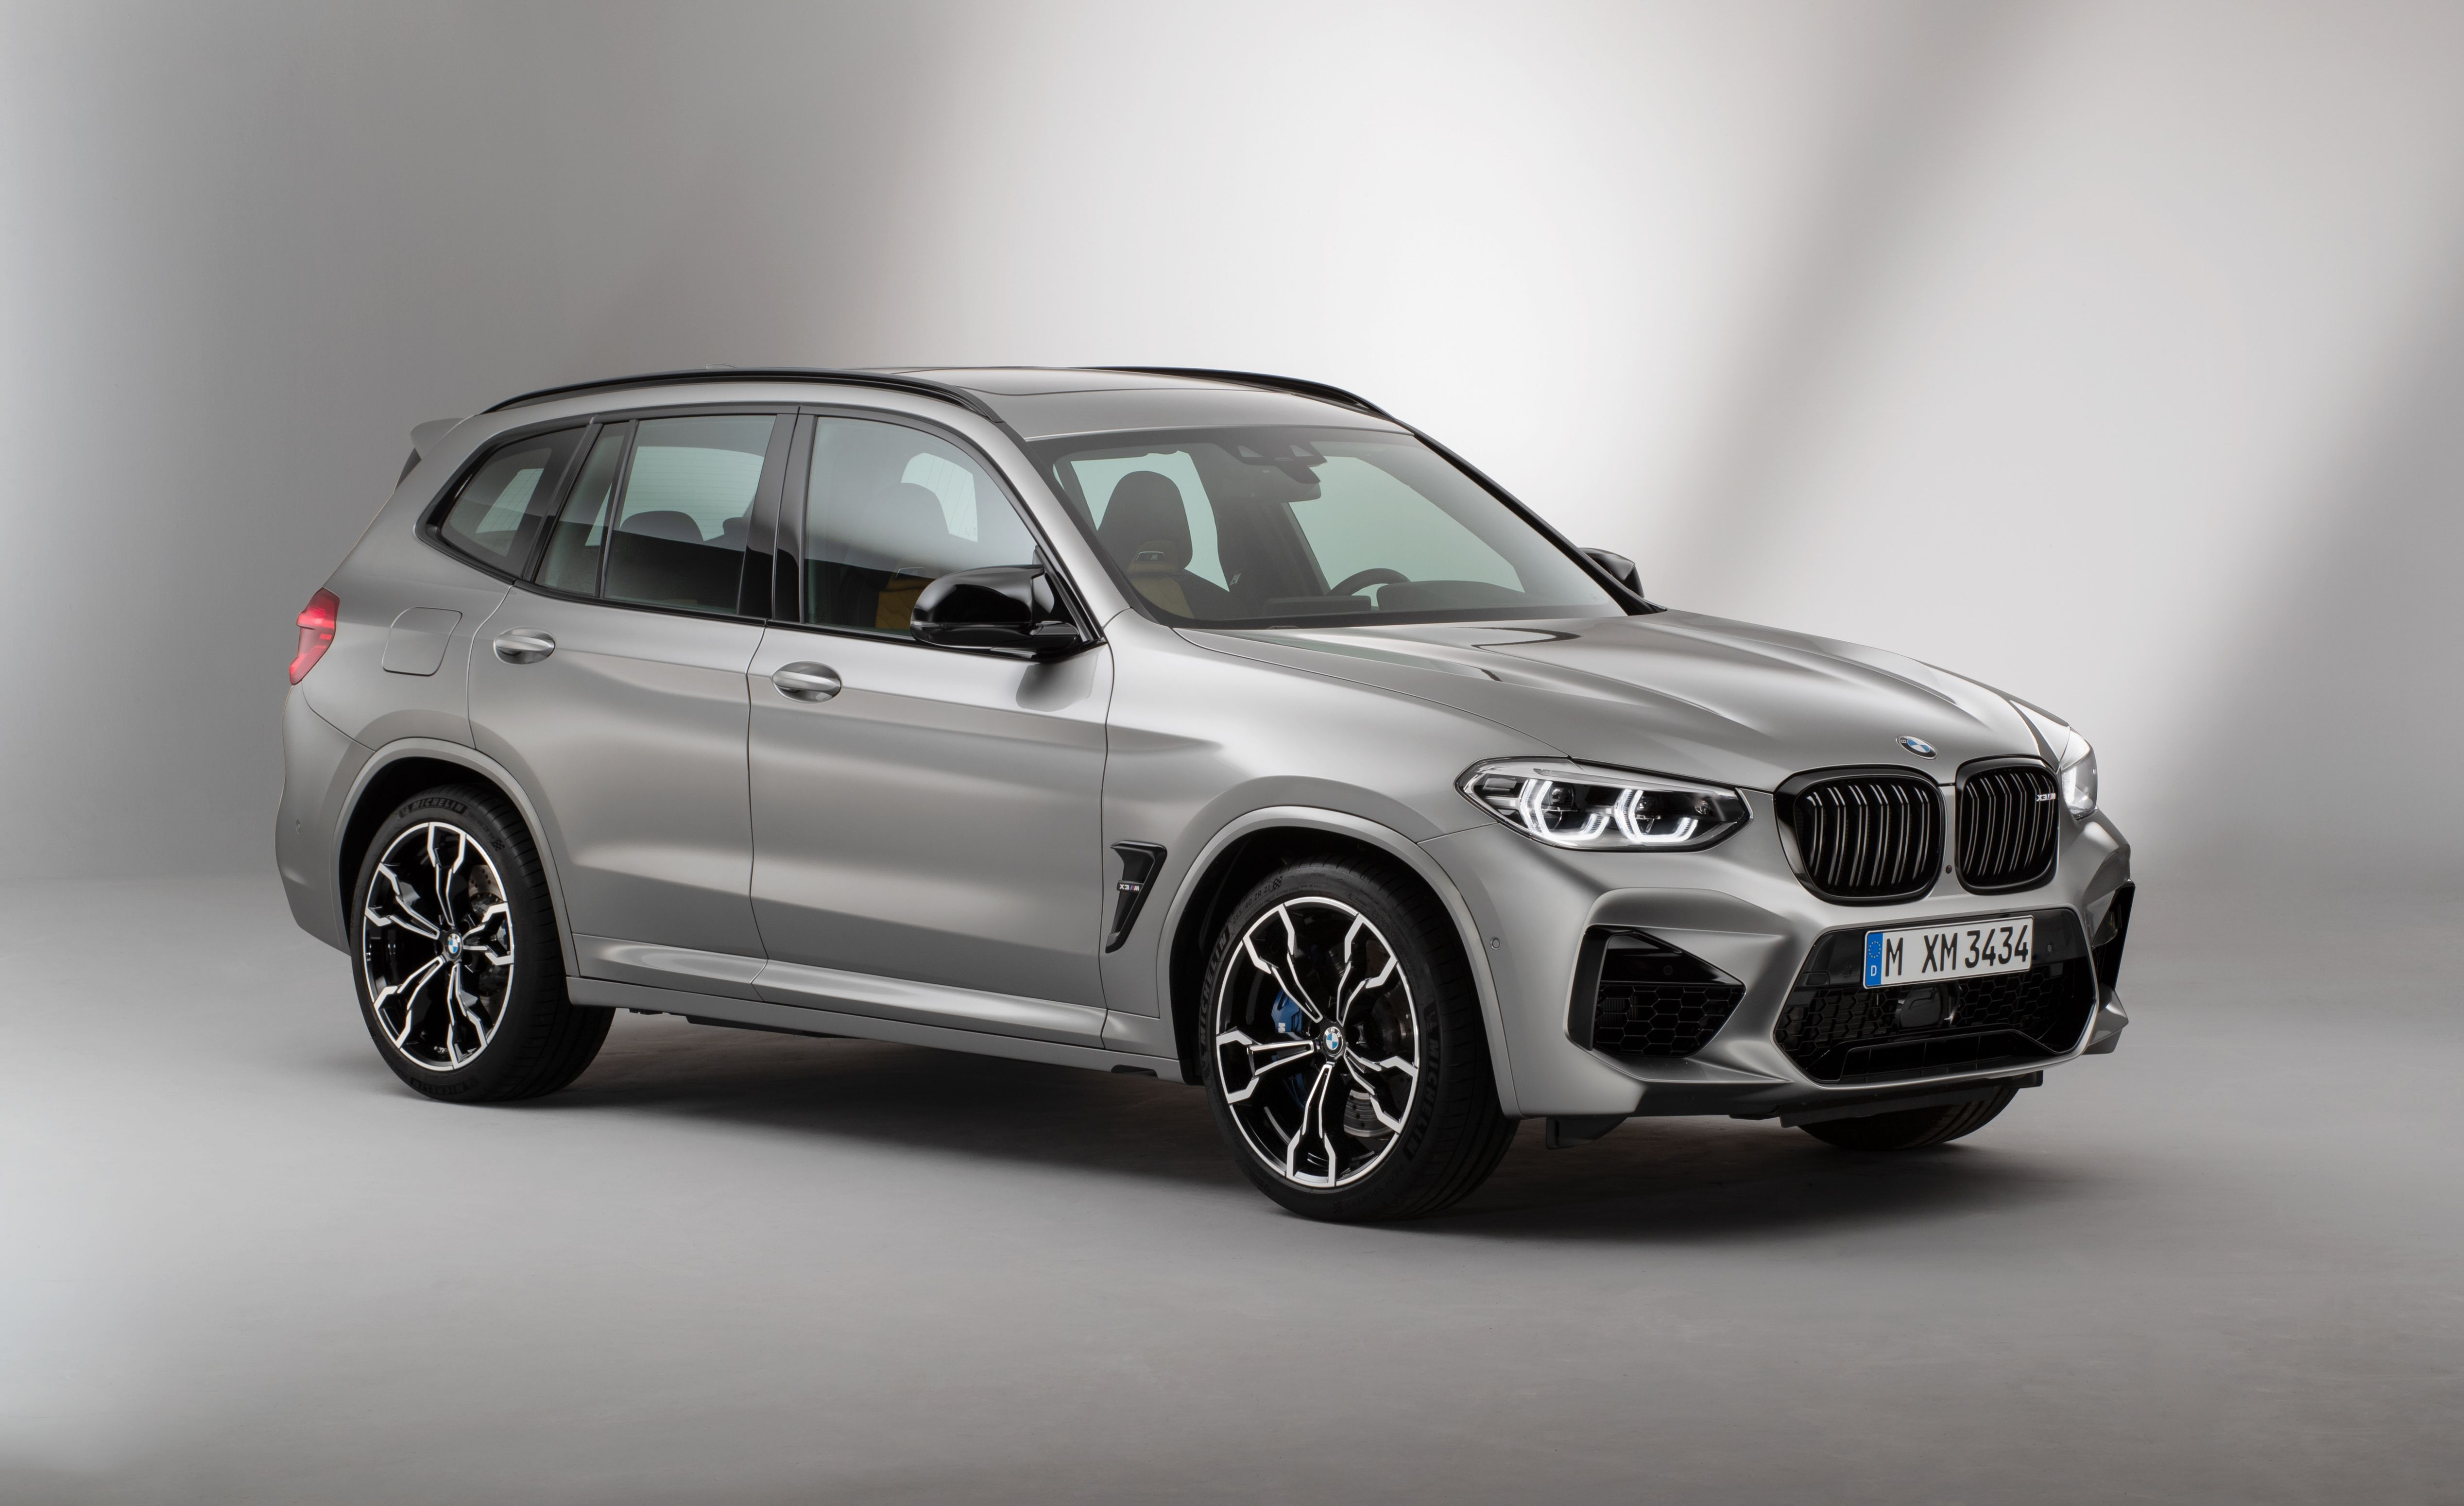 BMW X3 M (F97) exterior restyling